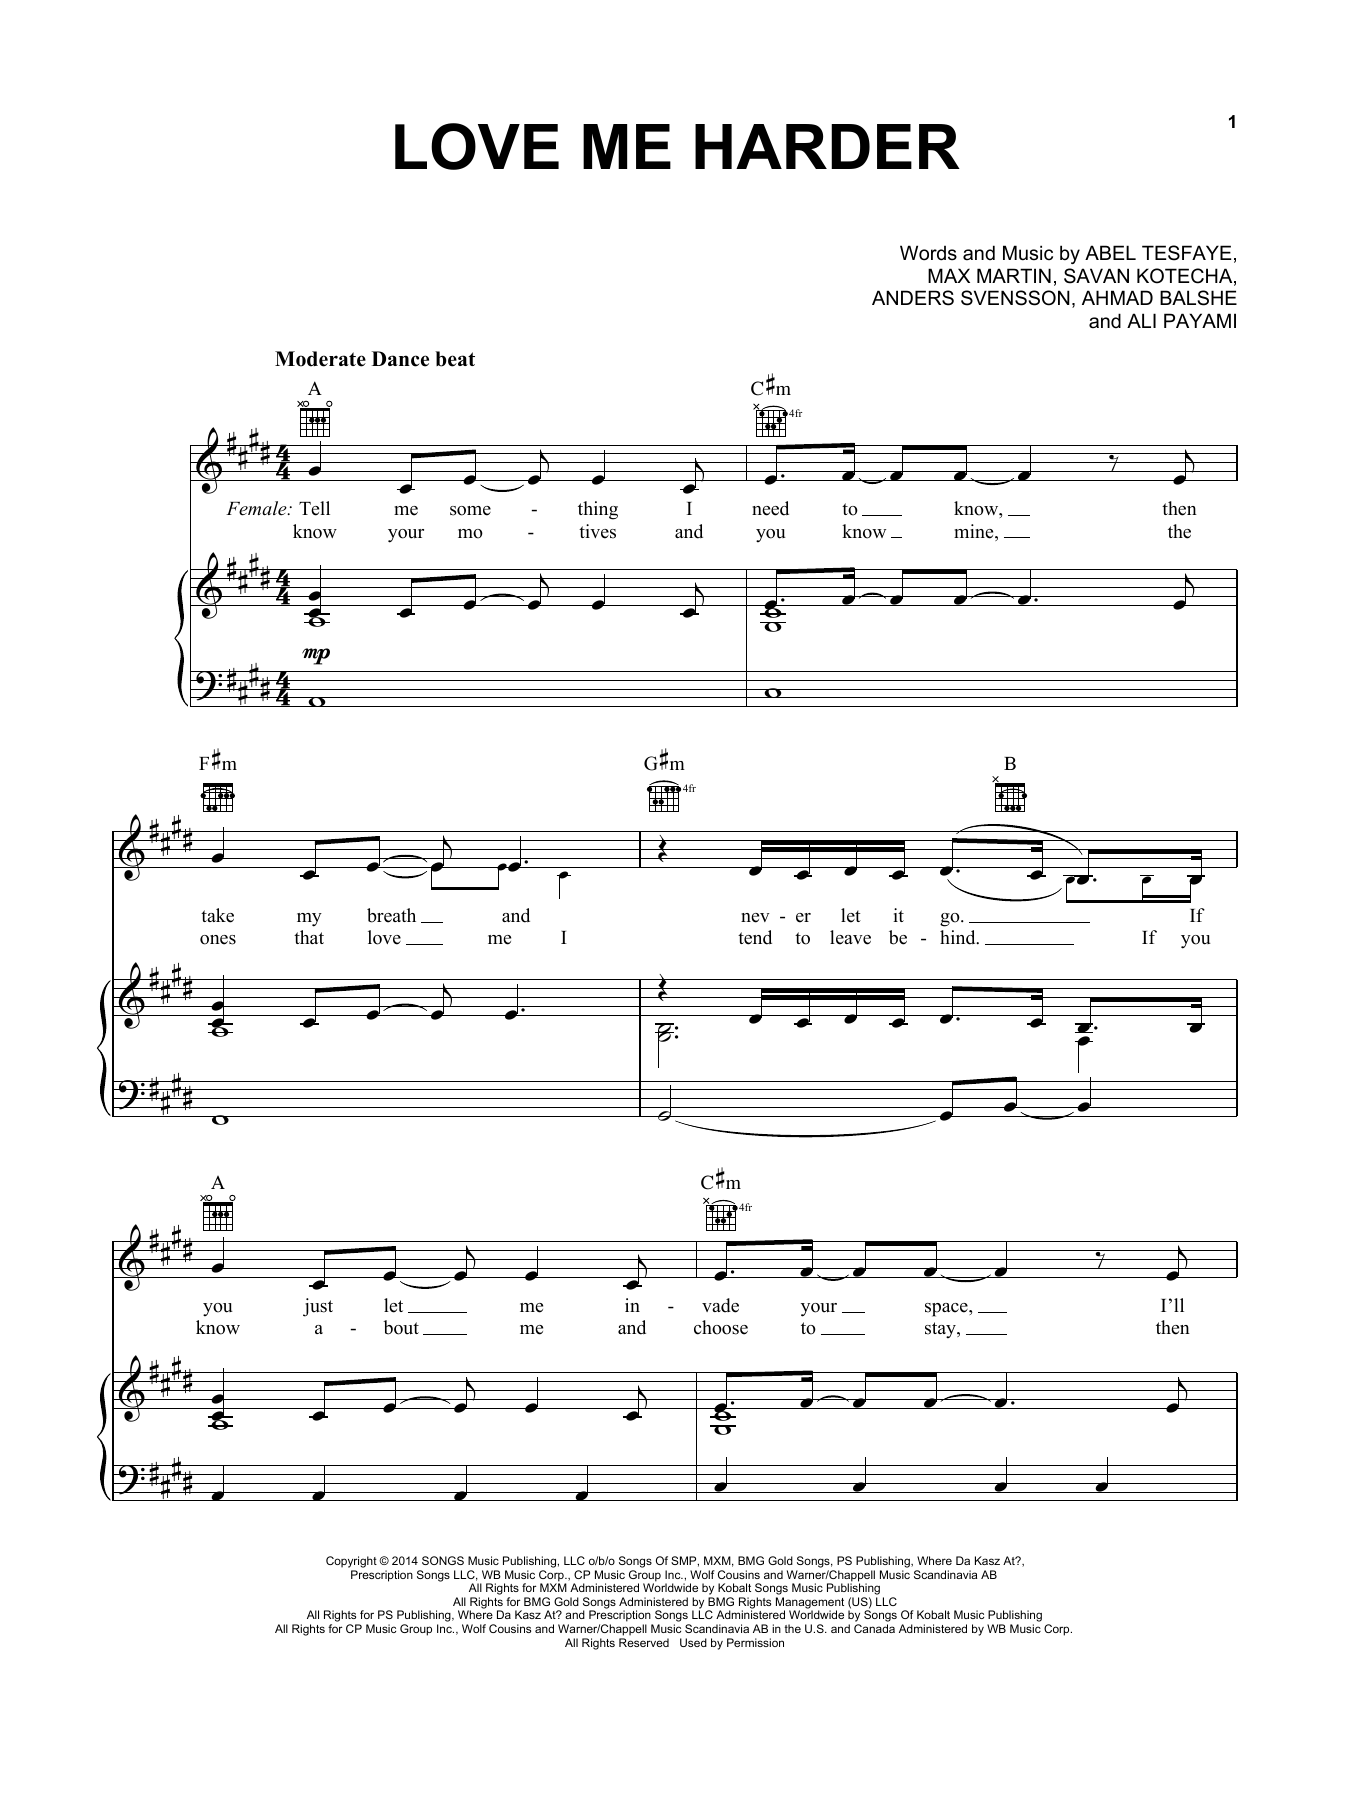 Ariana Grande & The Weeknd Love Me Harder sheet music notes and chords